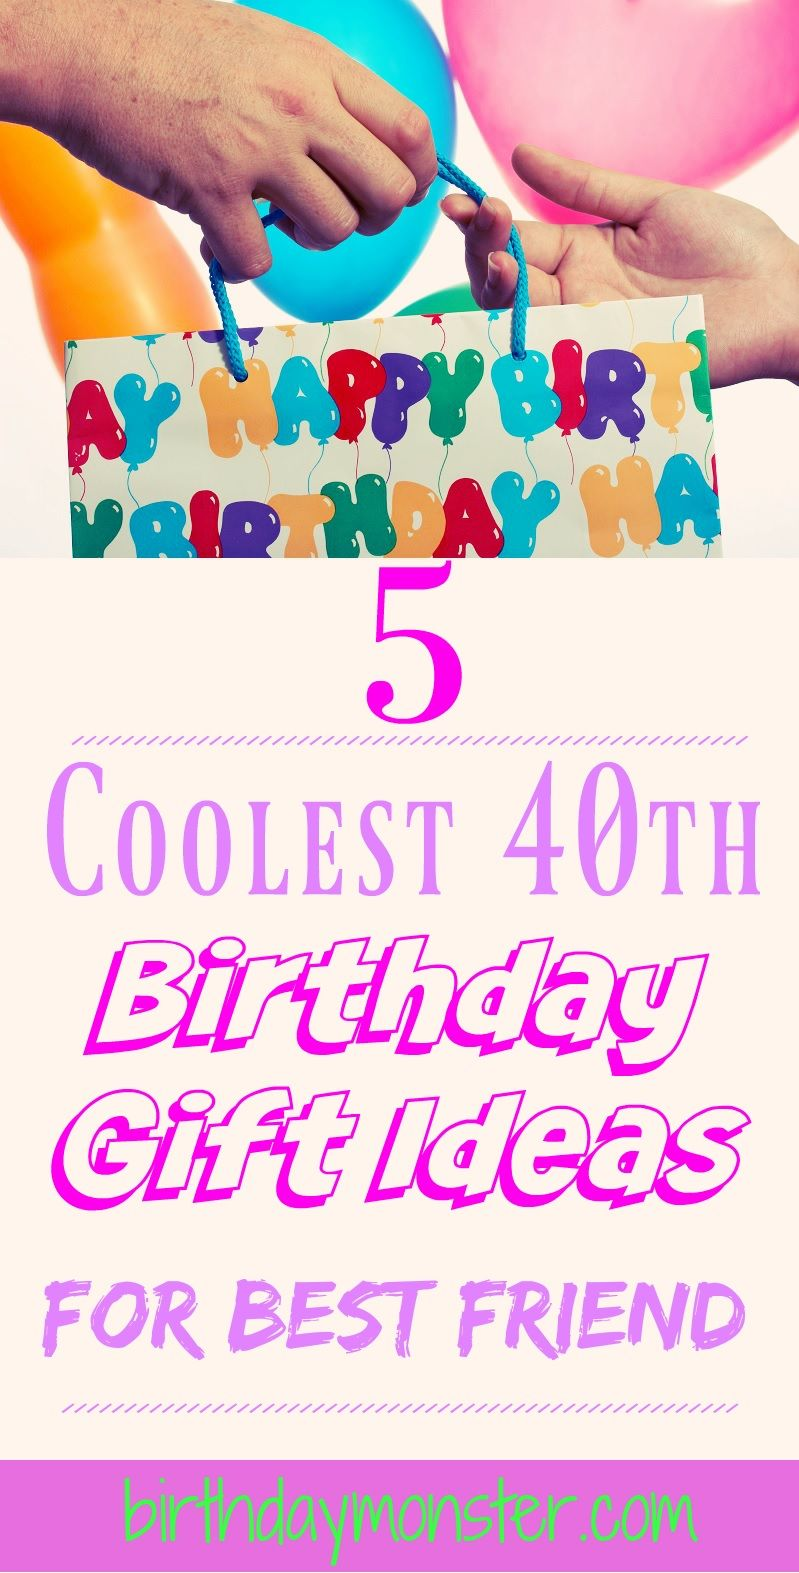 40th birthday gift ideas for best friend no matter how you